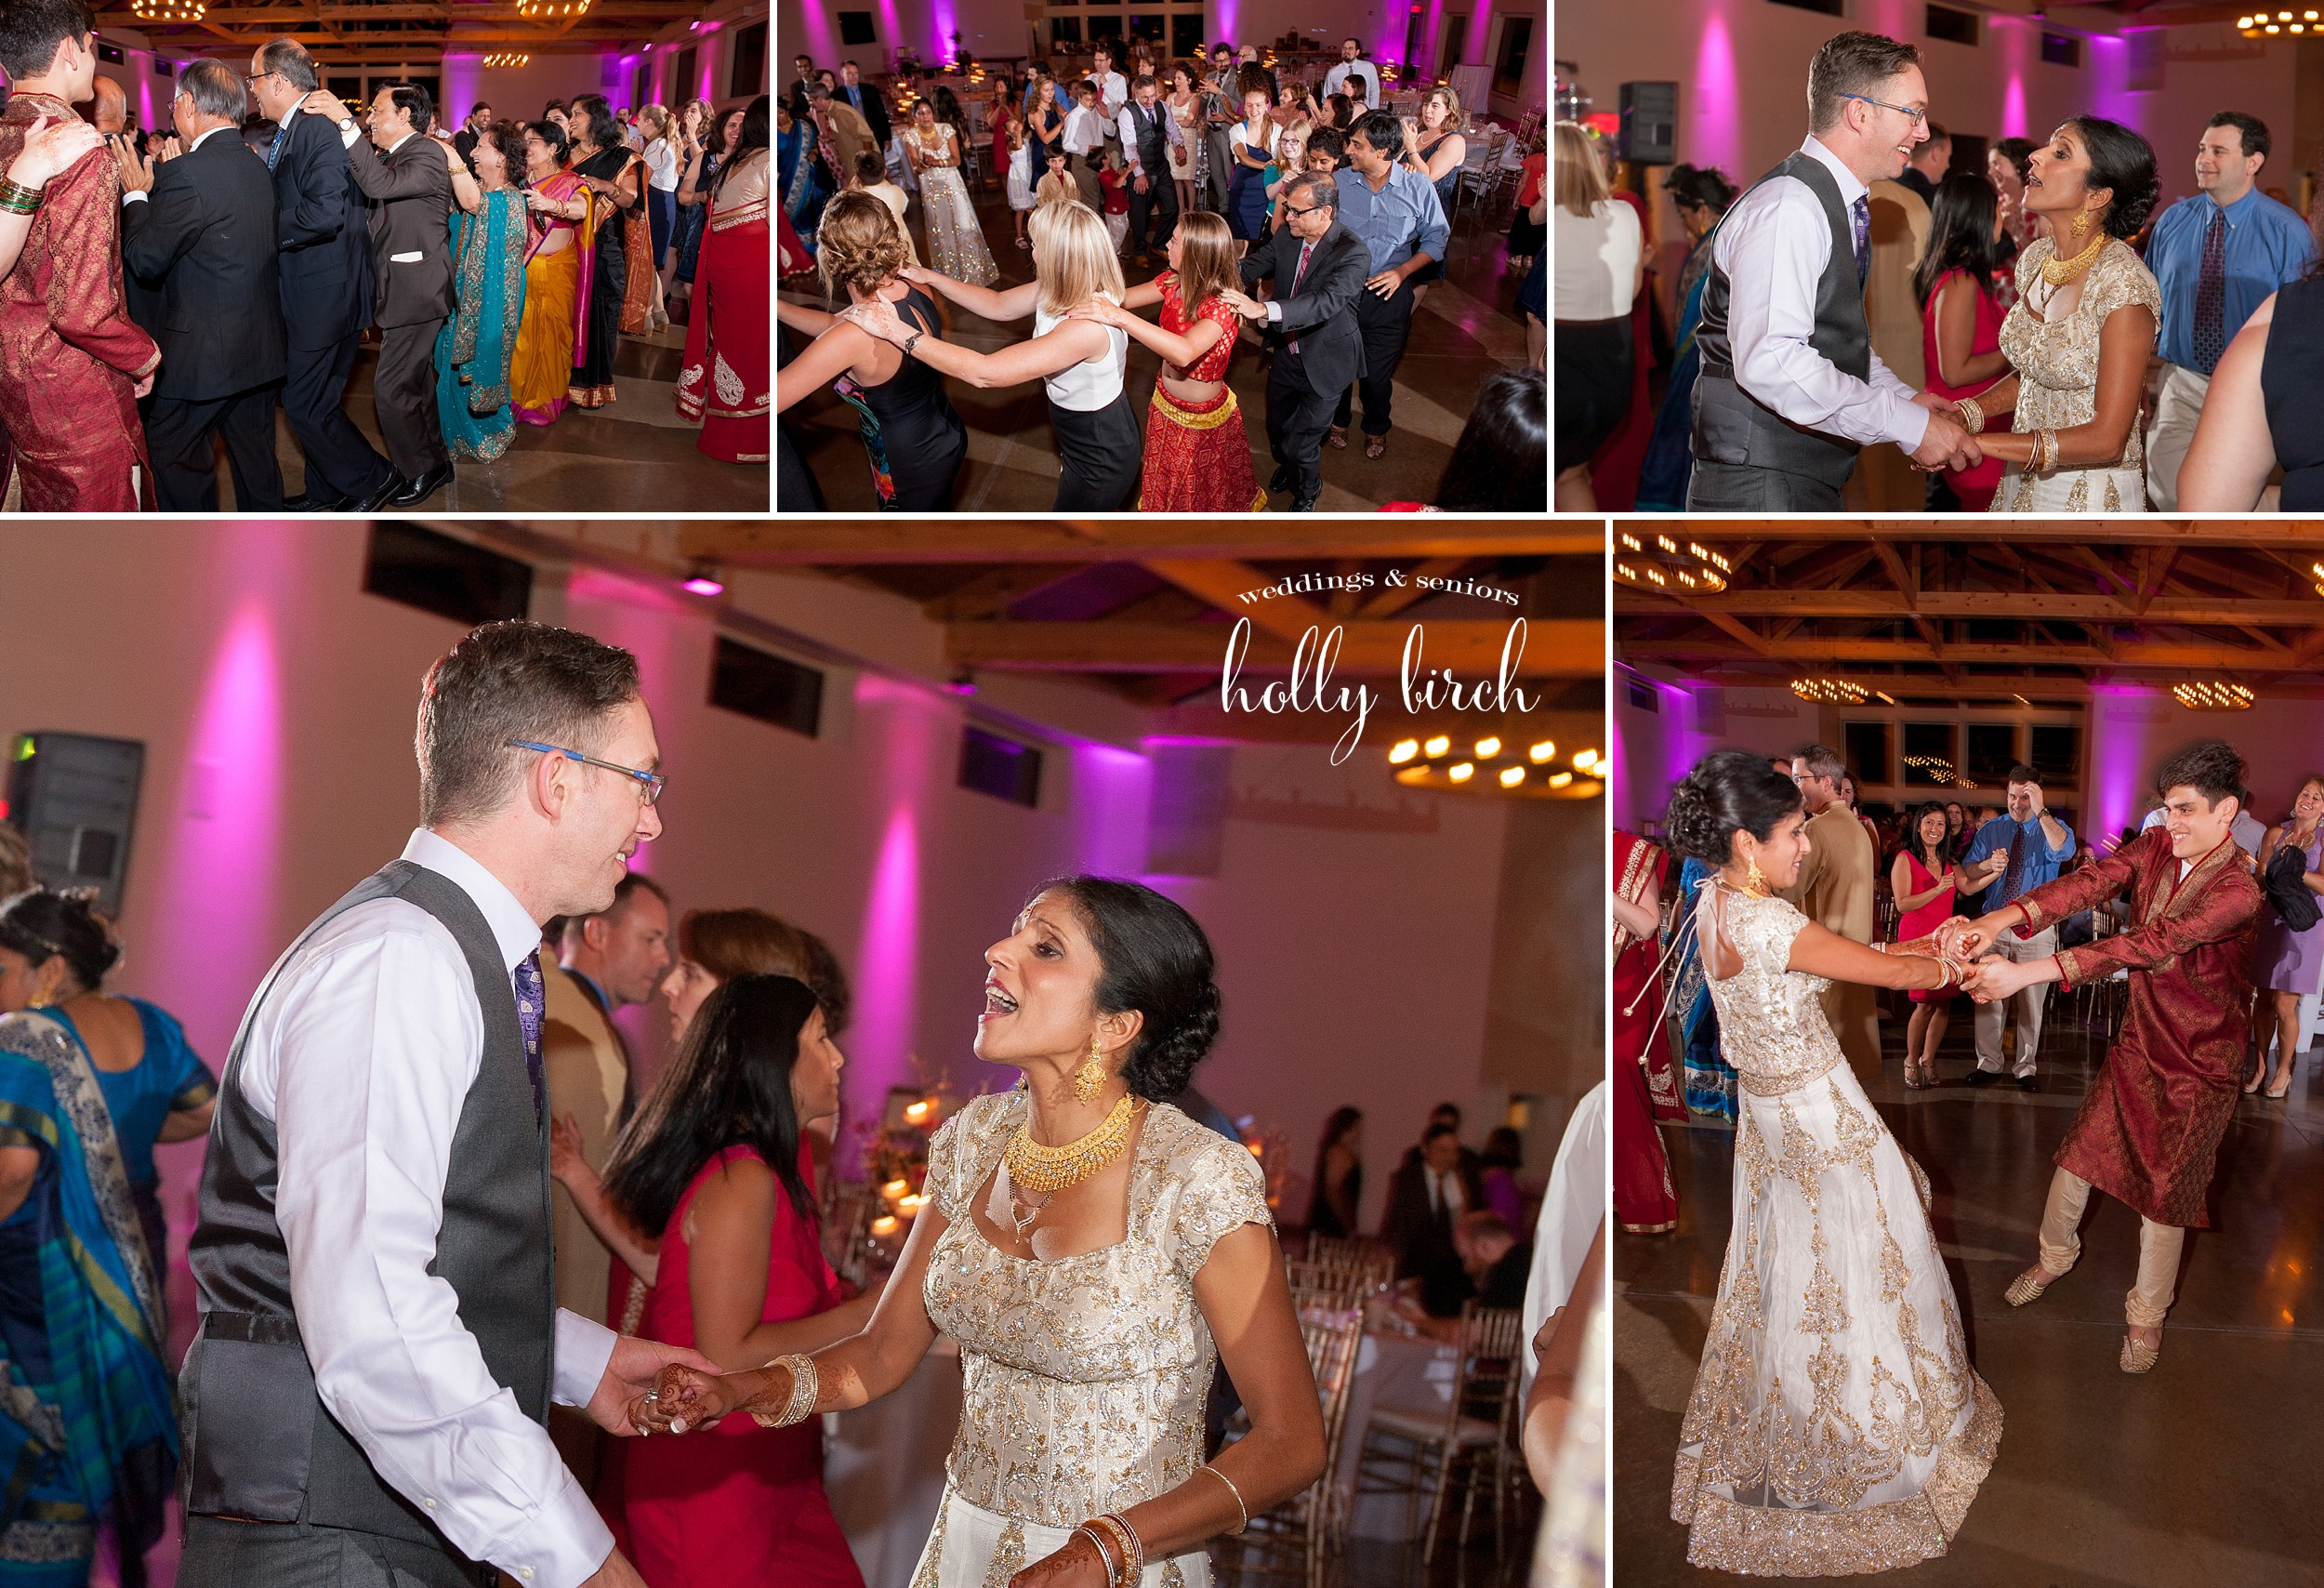 candid shots from dance floor with purple uplighting